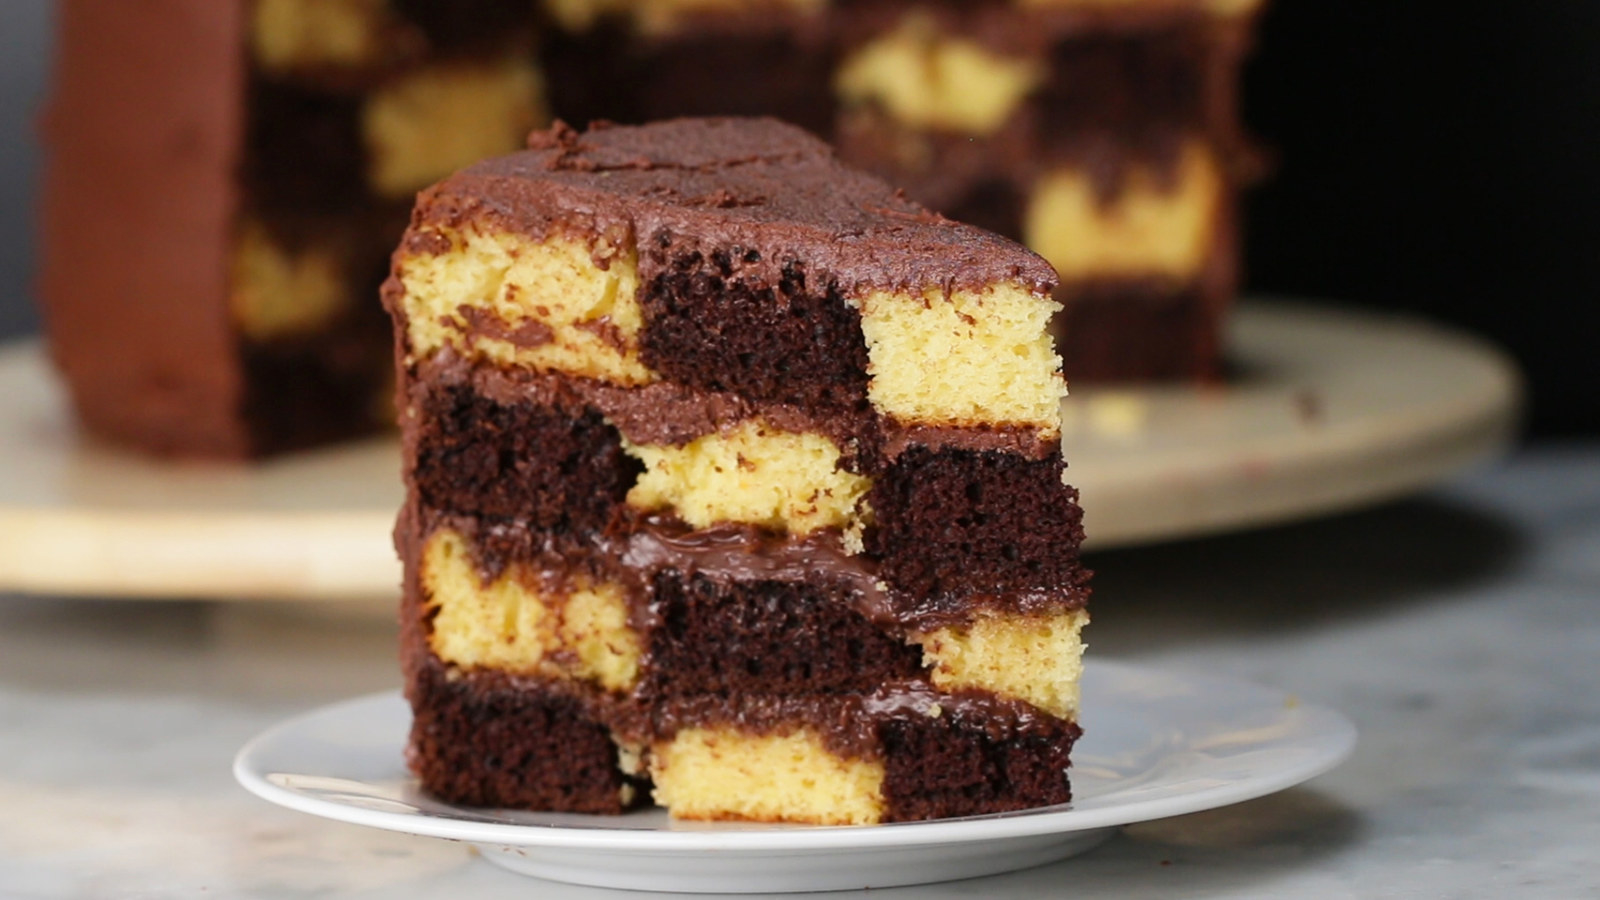 This Checkerboard Cake Will Make You Feel Things